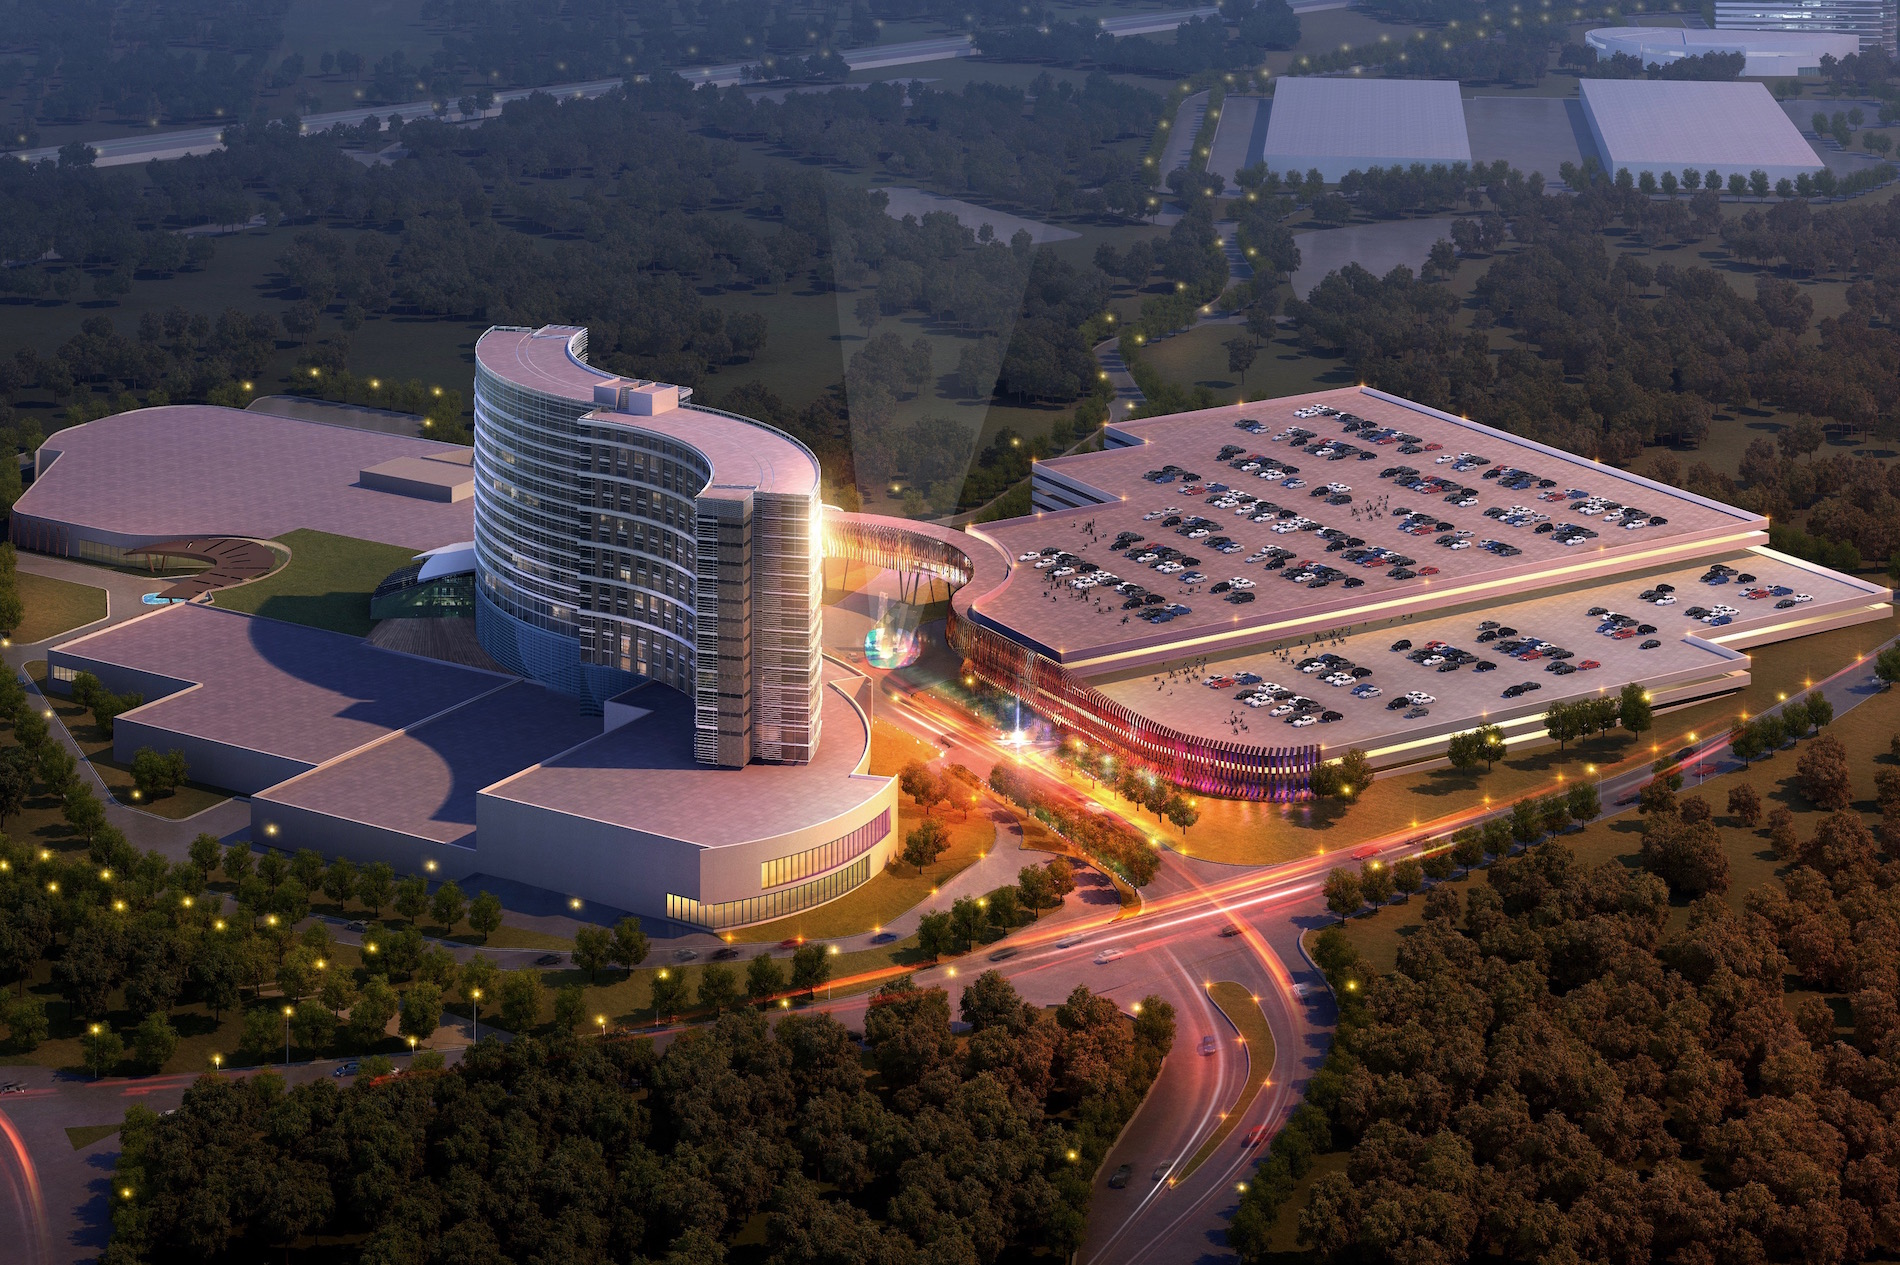 Mashpee Wampanoag Tribe to break ground on long-awaited casino